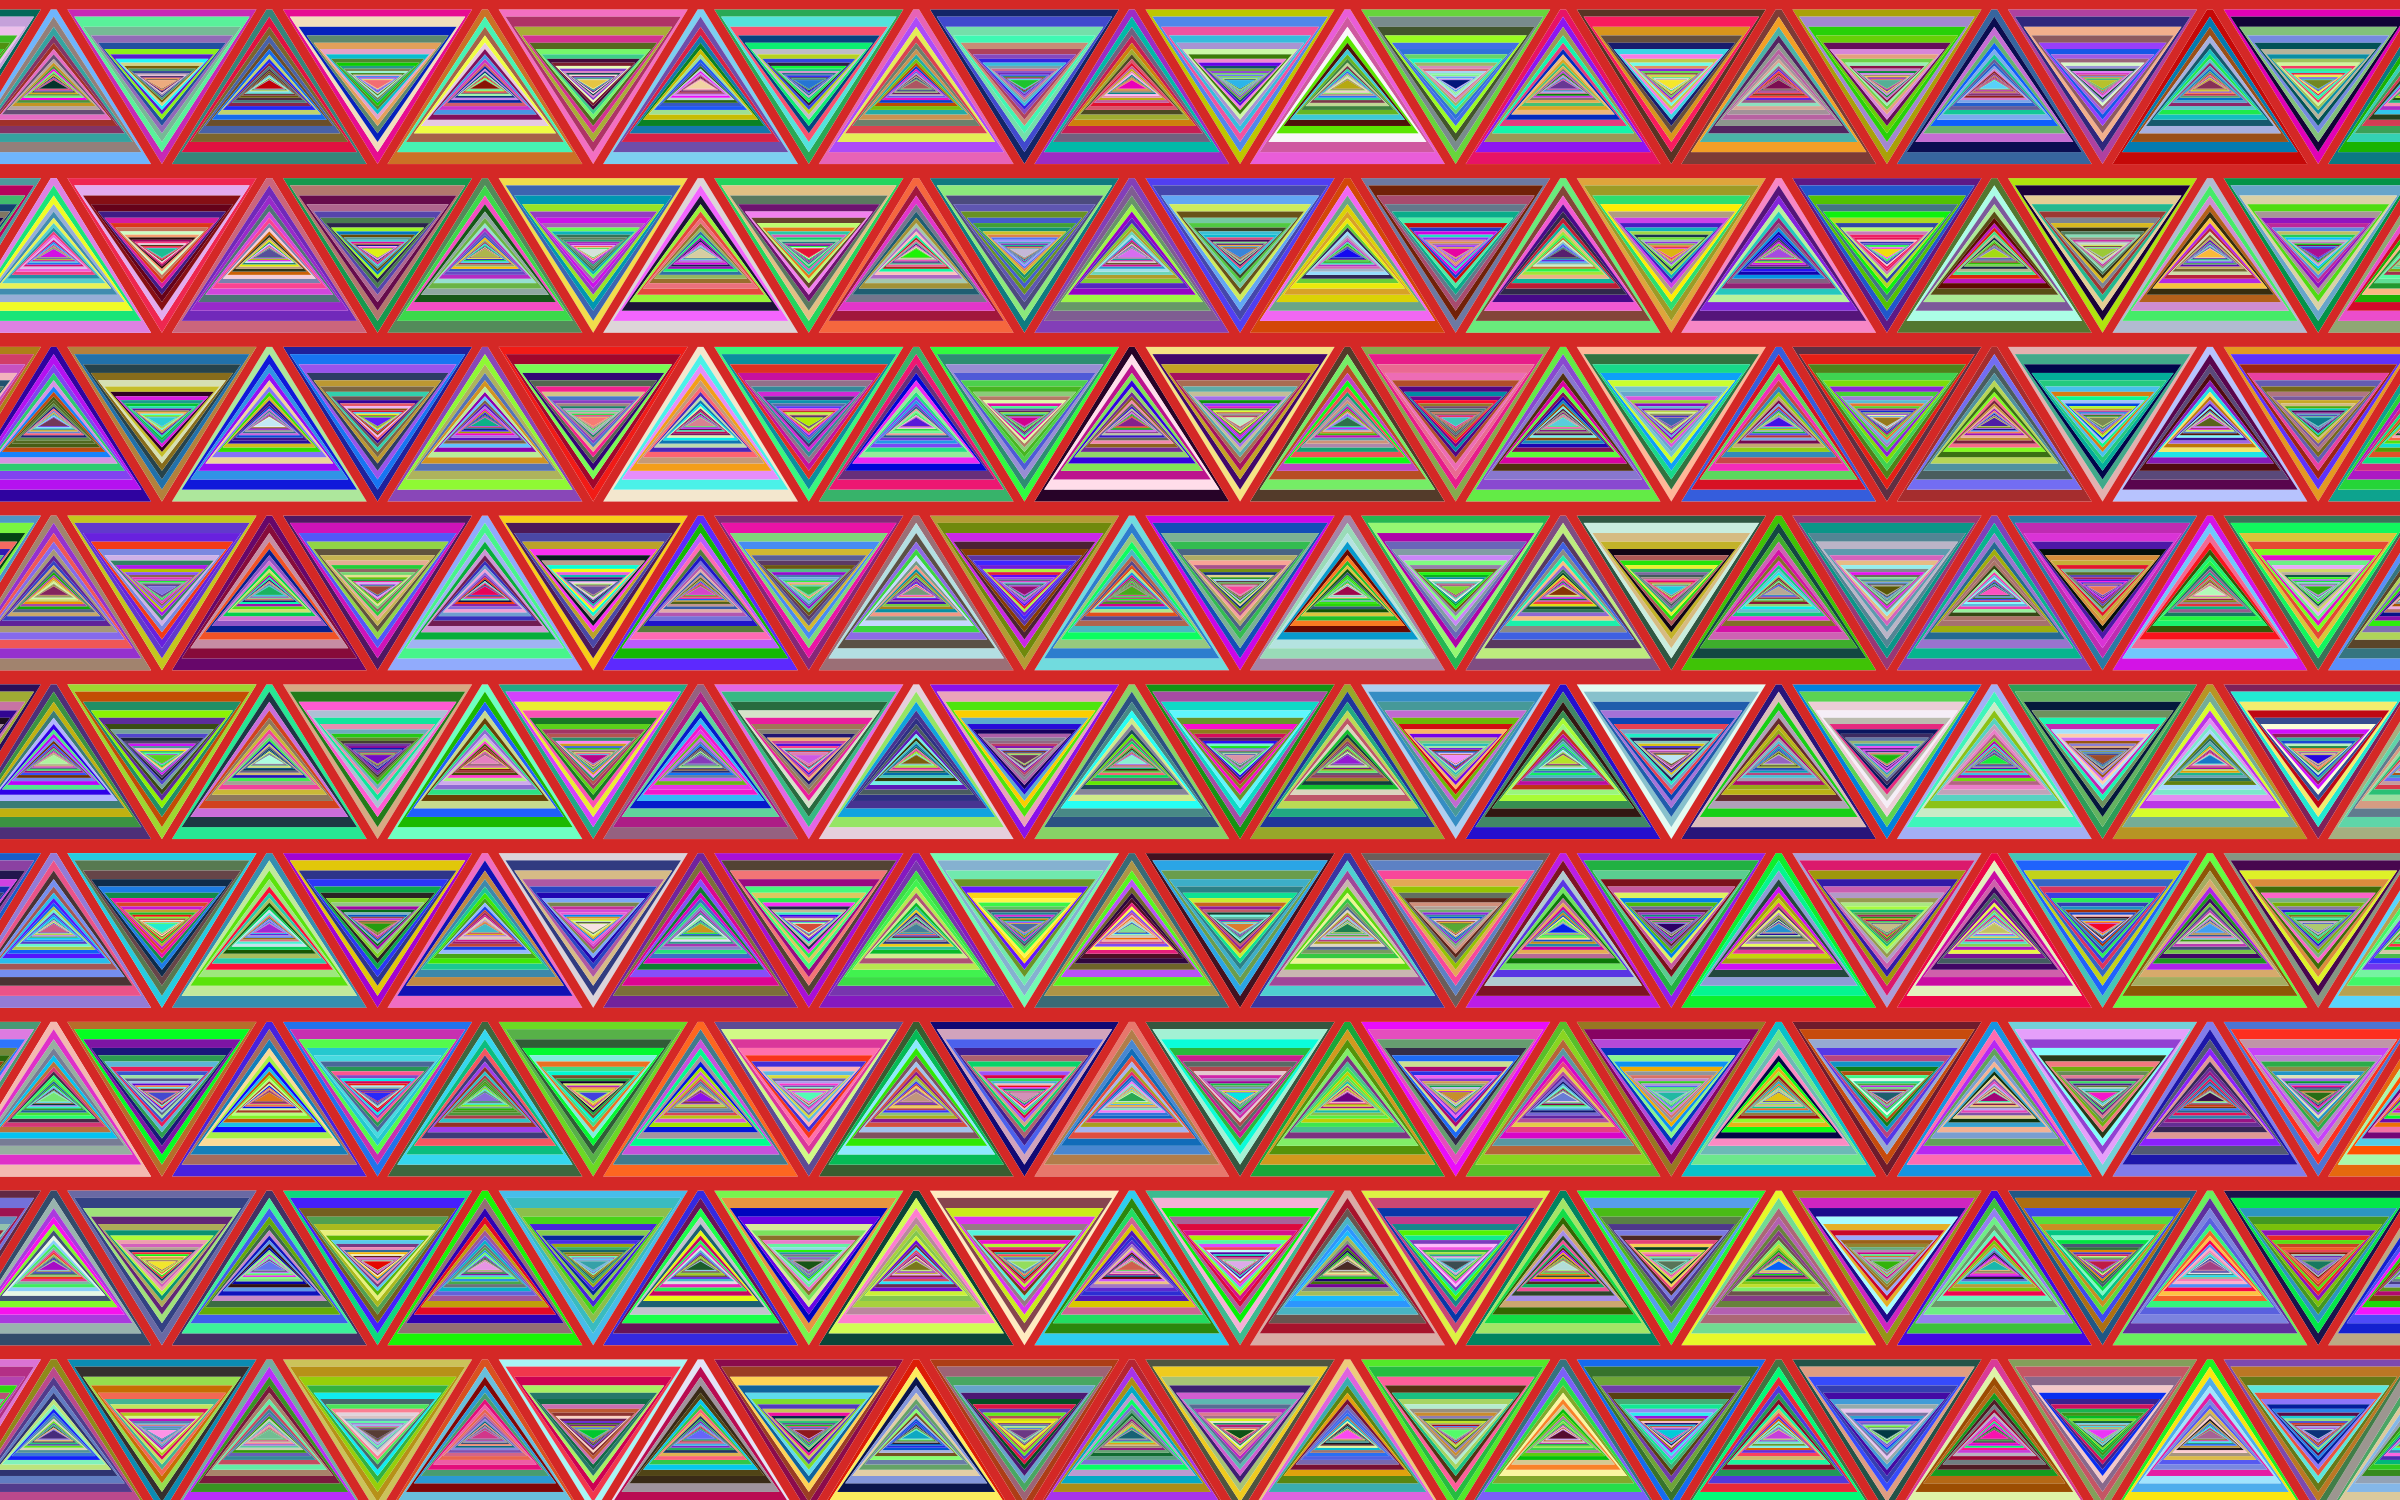 Prismatic Pythagorean Pattern 3 by GDJ